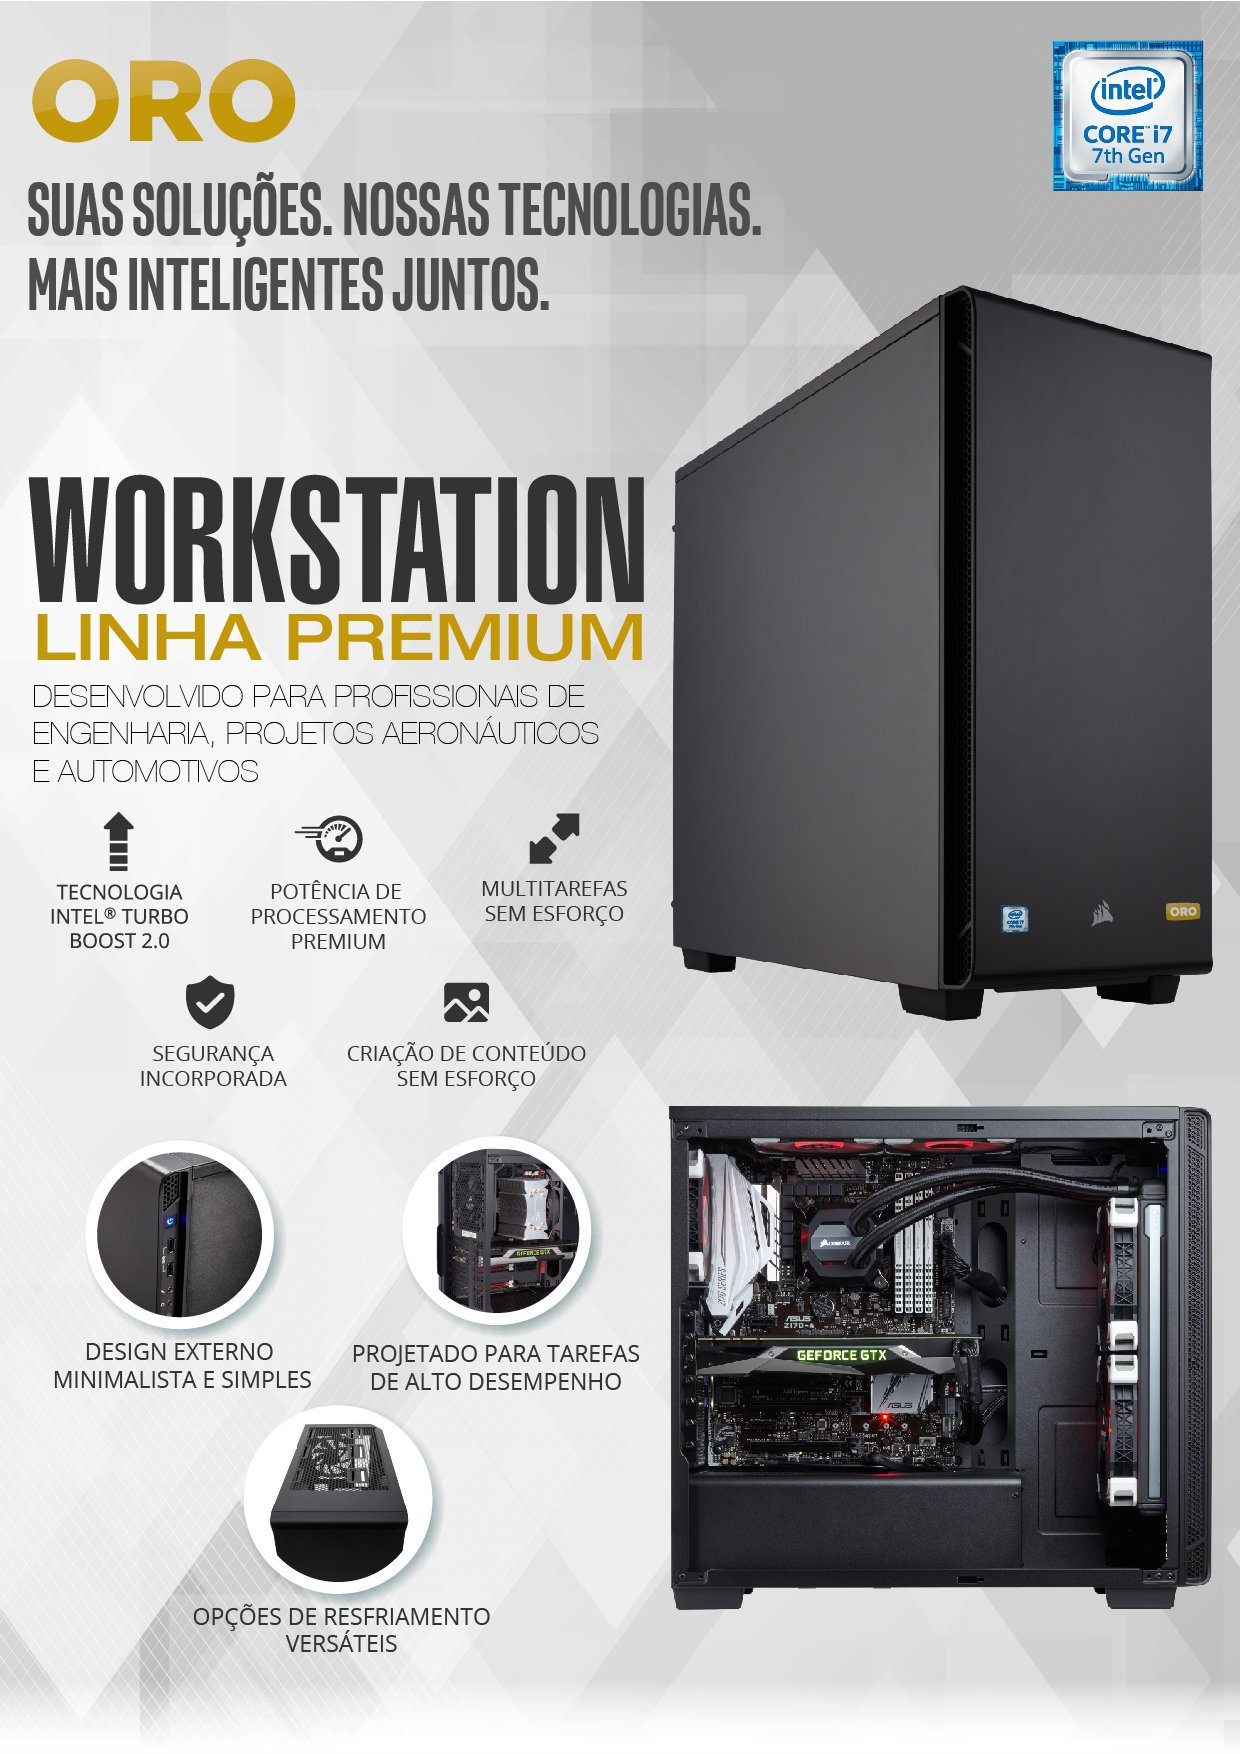 WORKSTATION INTEL I7-7700 16GB / 2TB / SSD 240 / QUADRO 2GB / LINUX - ORO 3